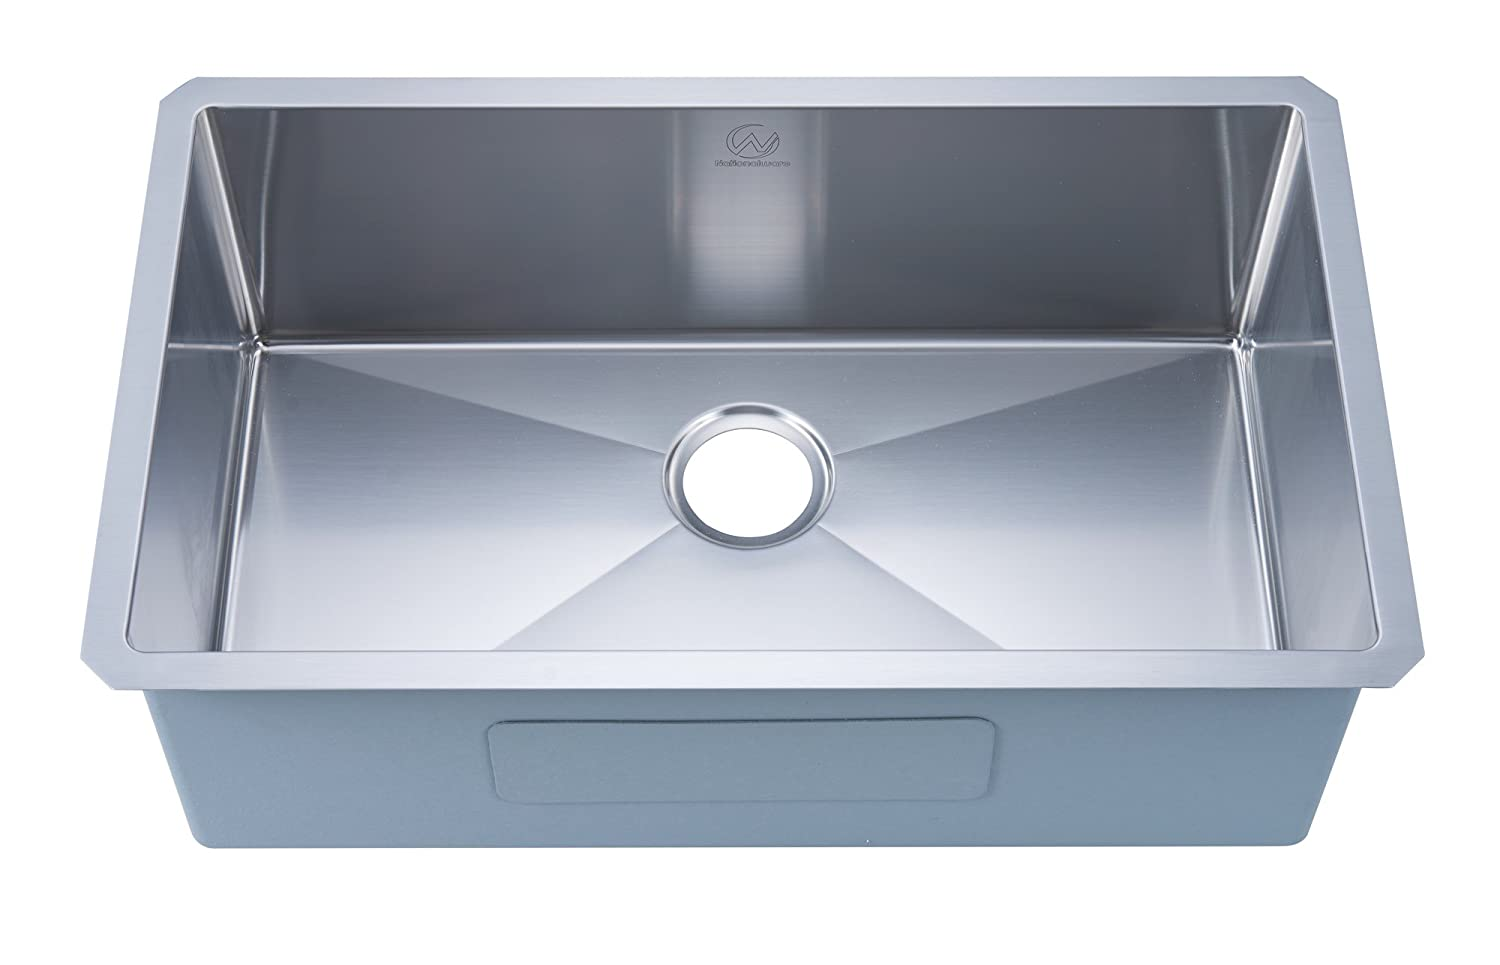 Stufurhome NW-3018S Undermount 18 Gauge 30 Inches Single Bowl Kitchen Sink Stainless Steel - - Amazon.com  sc 1 st  Amazon.com & Stufurhome NW-3018S Undermount 18 Gauge 30 Inches Single Bowl ...